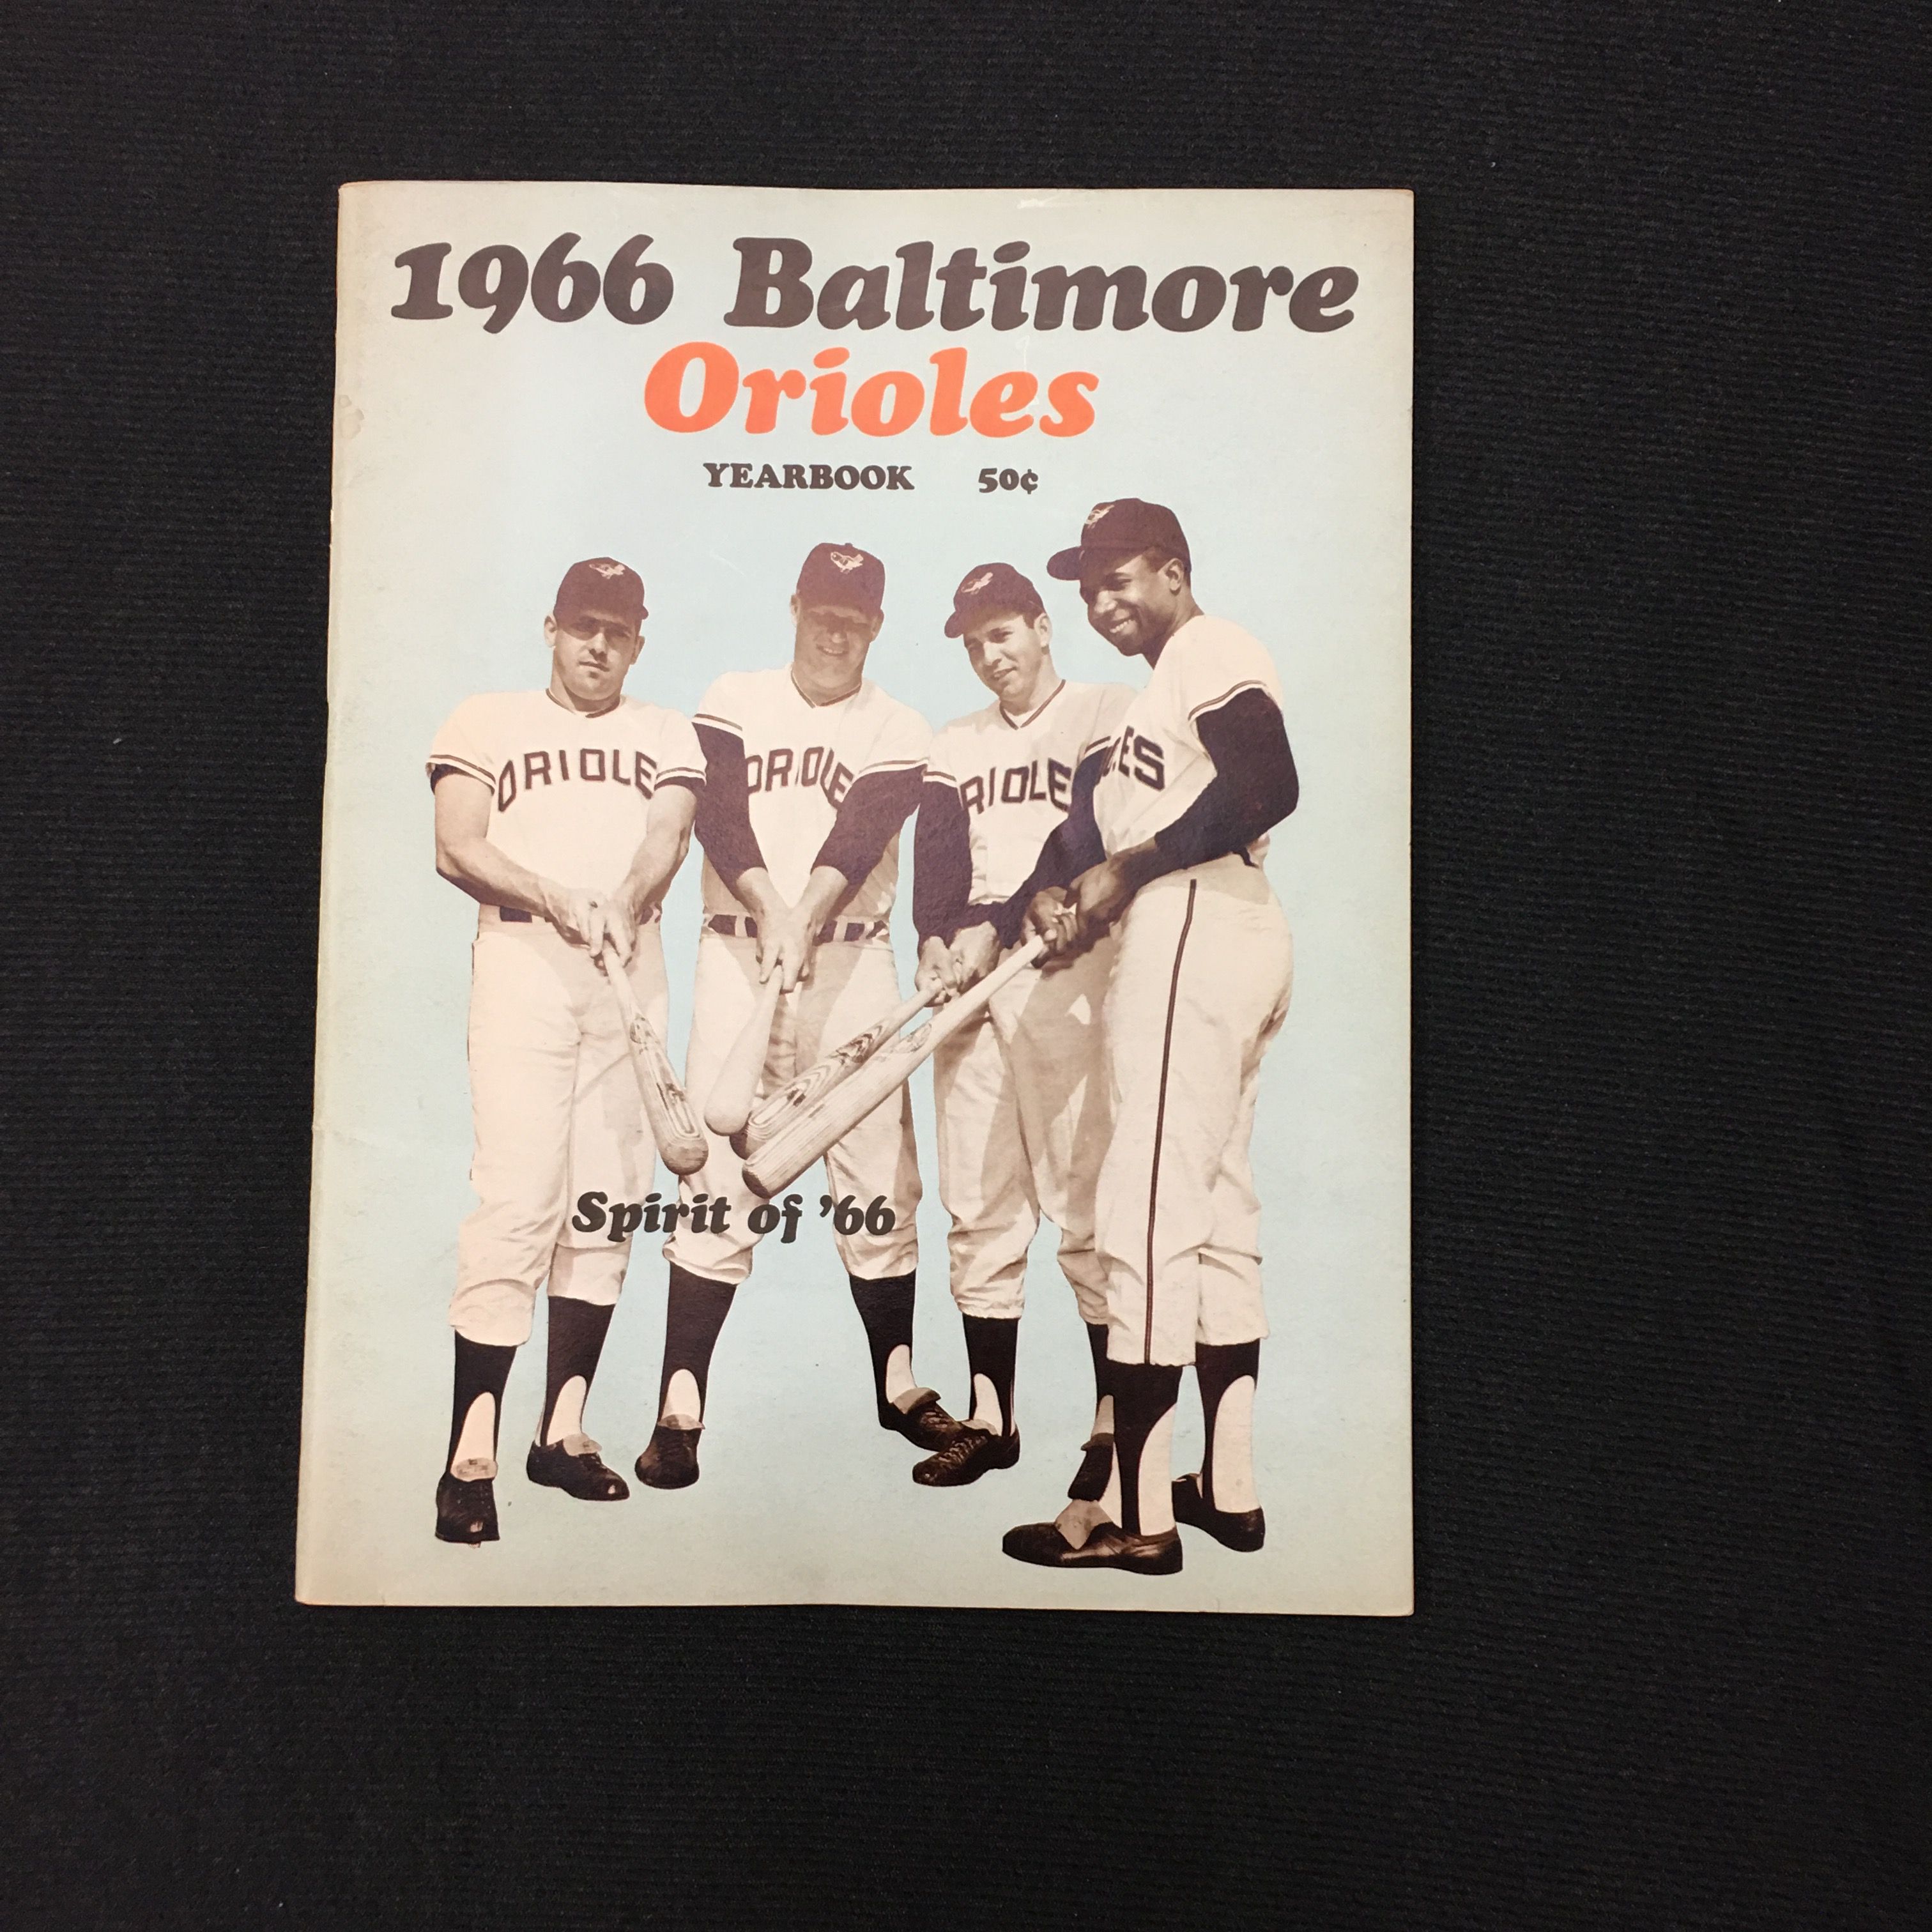 1966 Baltimore Orioles Yearbook